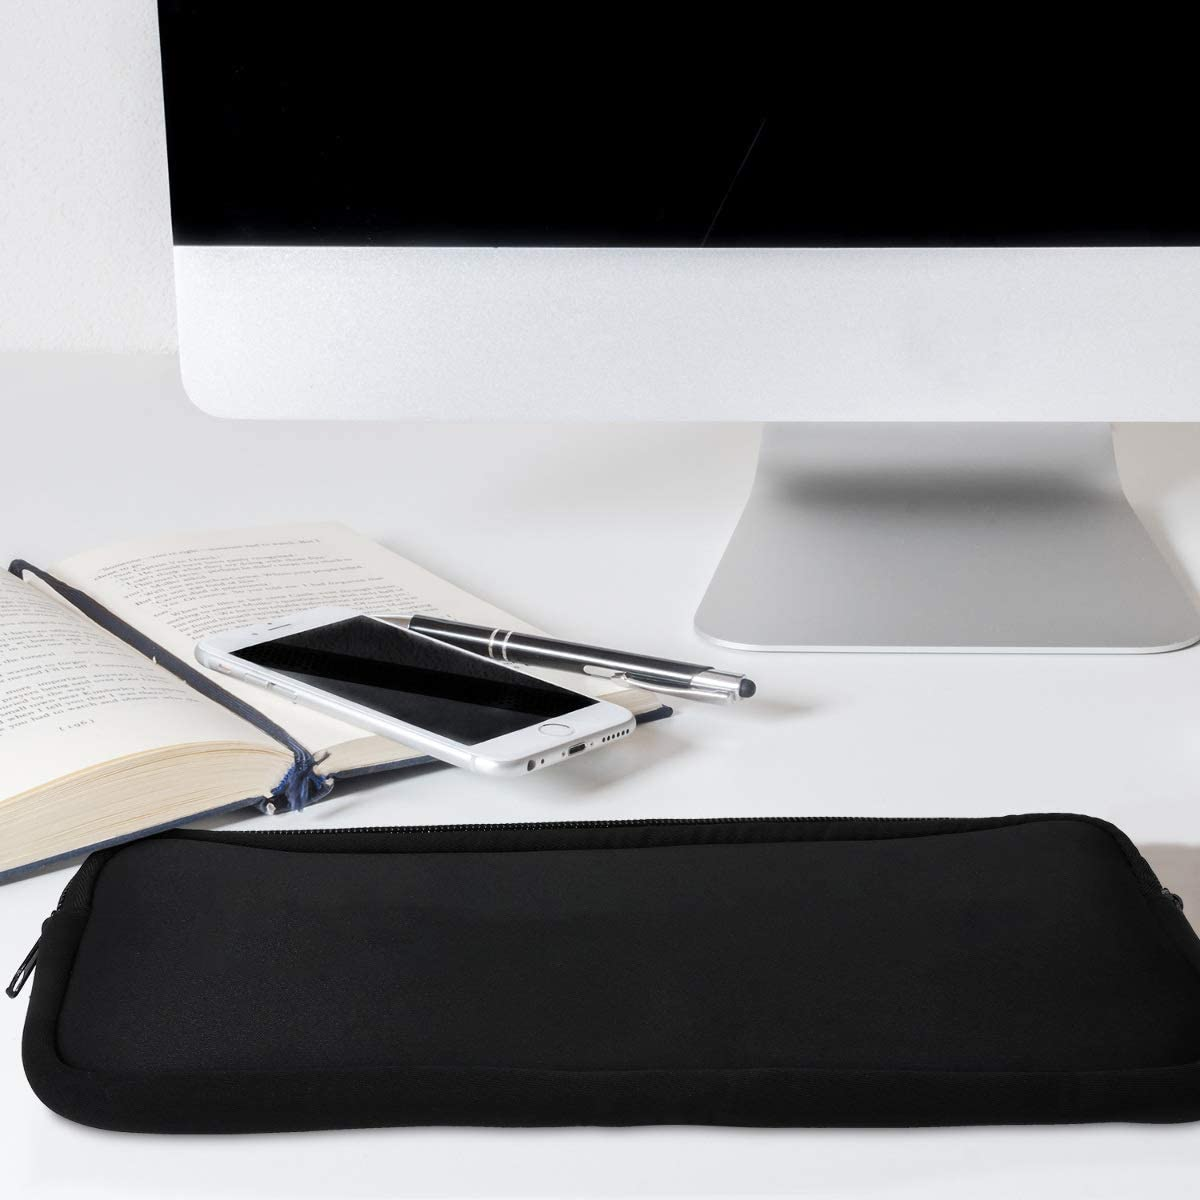 Black kwmobile Neoprene Pouch Compatible with Apple Magic Keyboard Keyboard Protector Dust Cover with Zipper